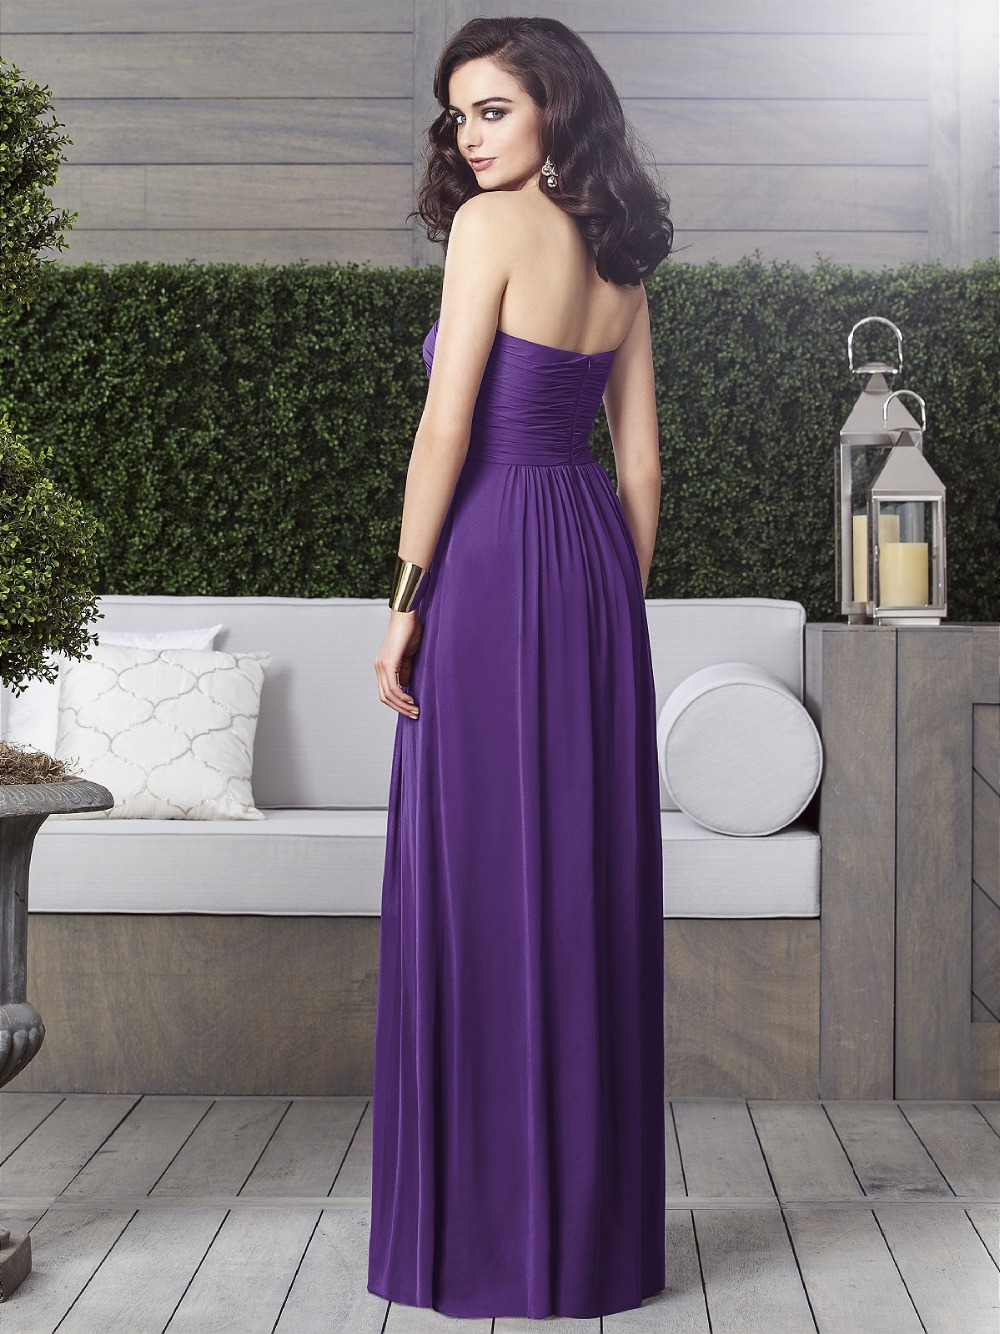 Size 0 bridesmaid dresses vosoi charming long purple chiffon bridesmaid dresses plus size 2015 new ombrellifo Gallery